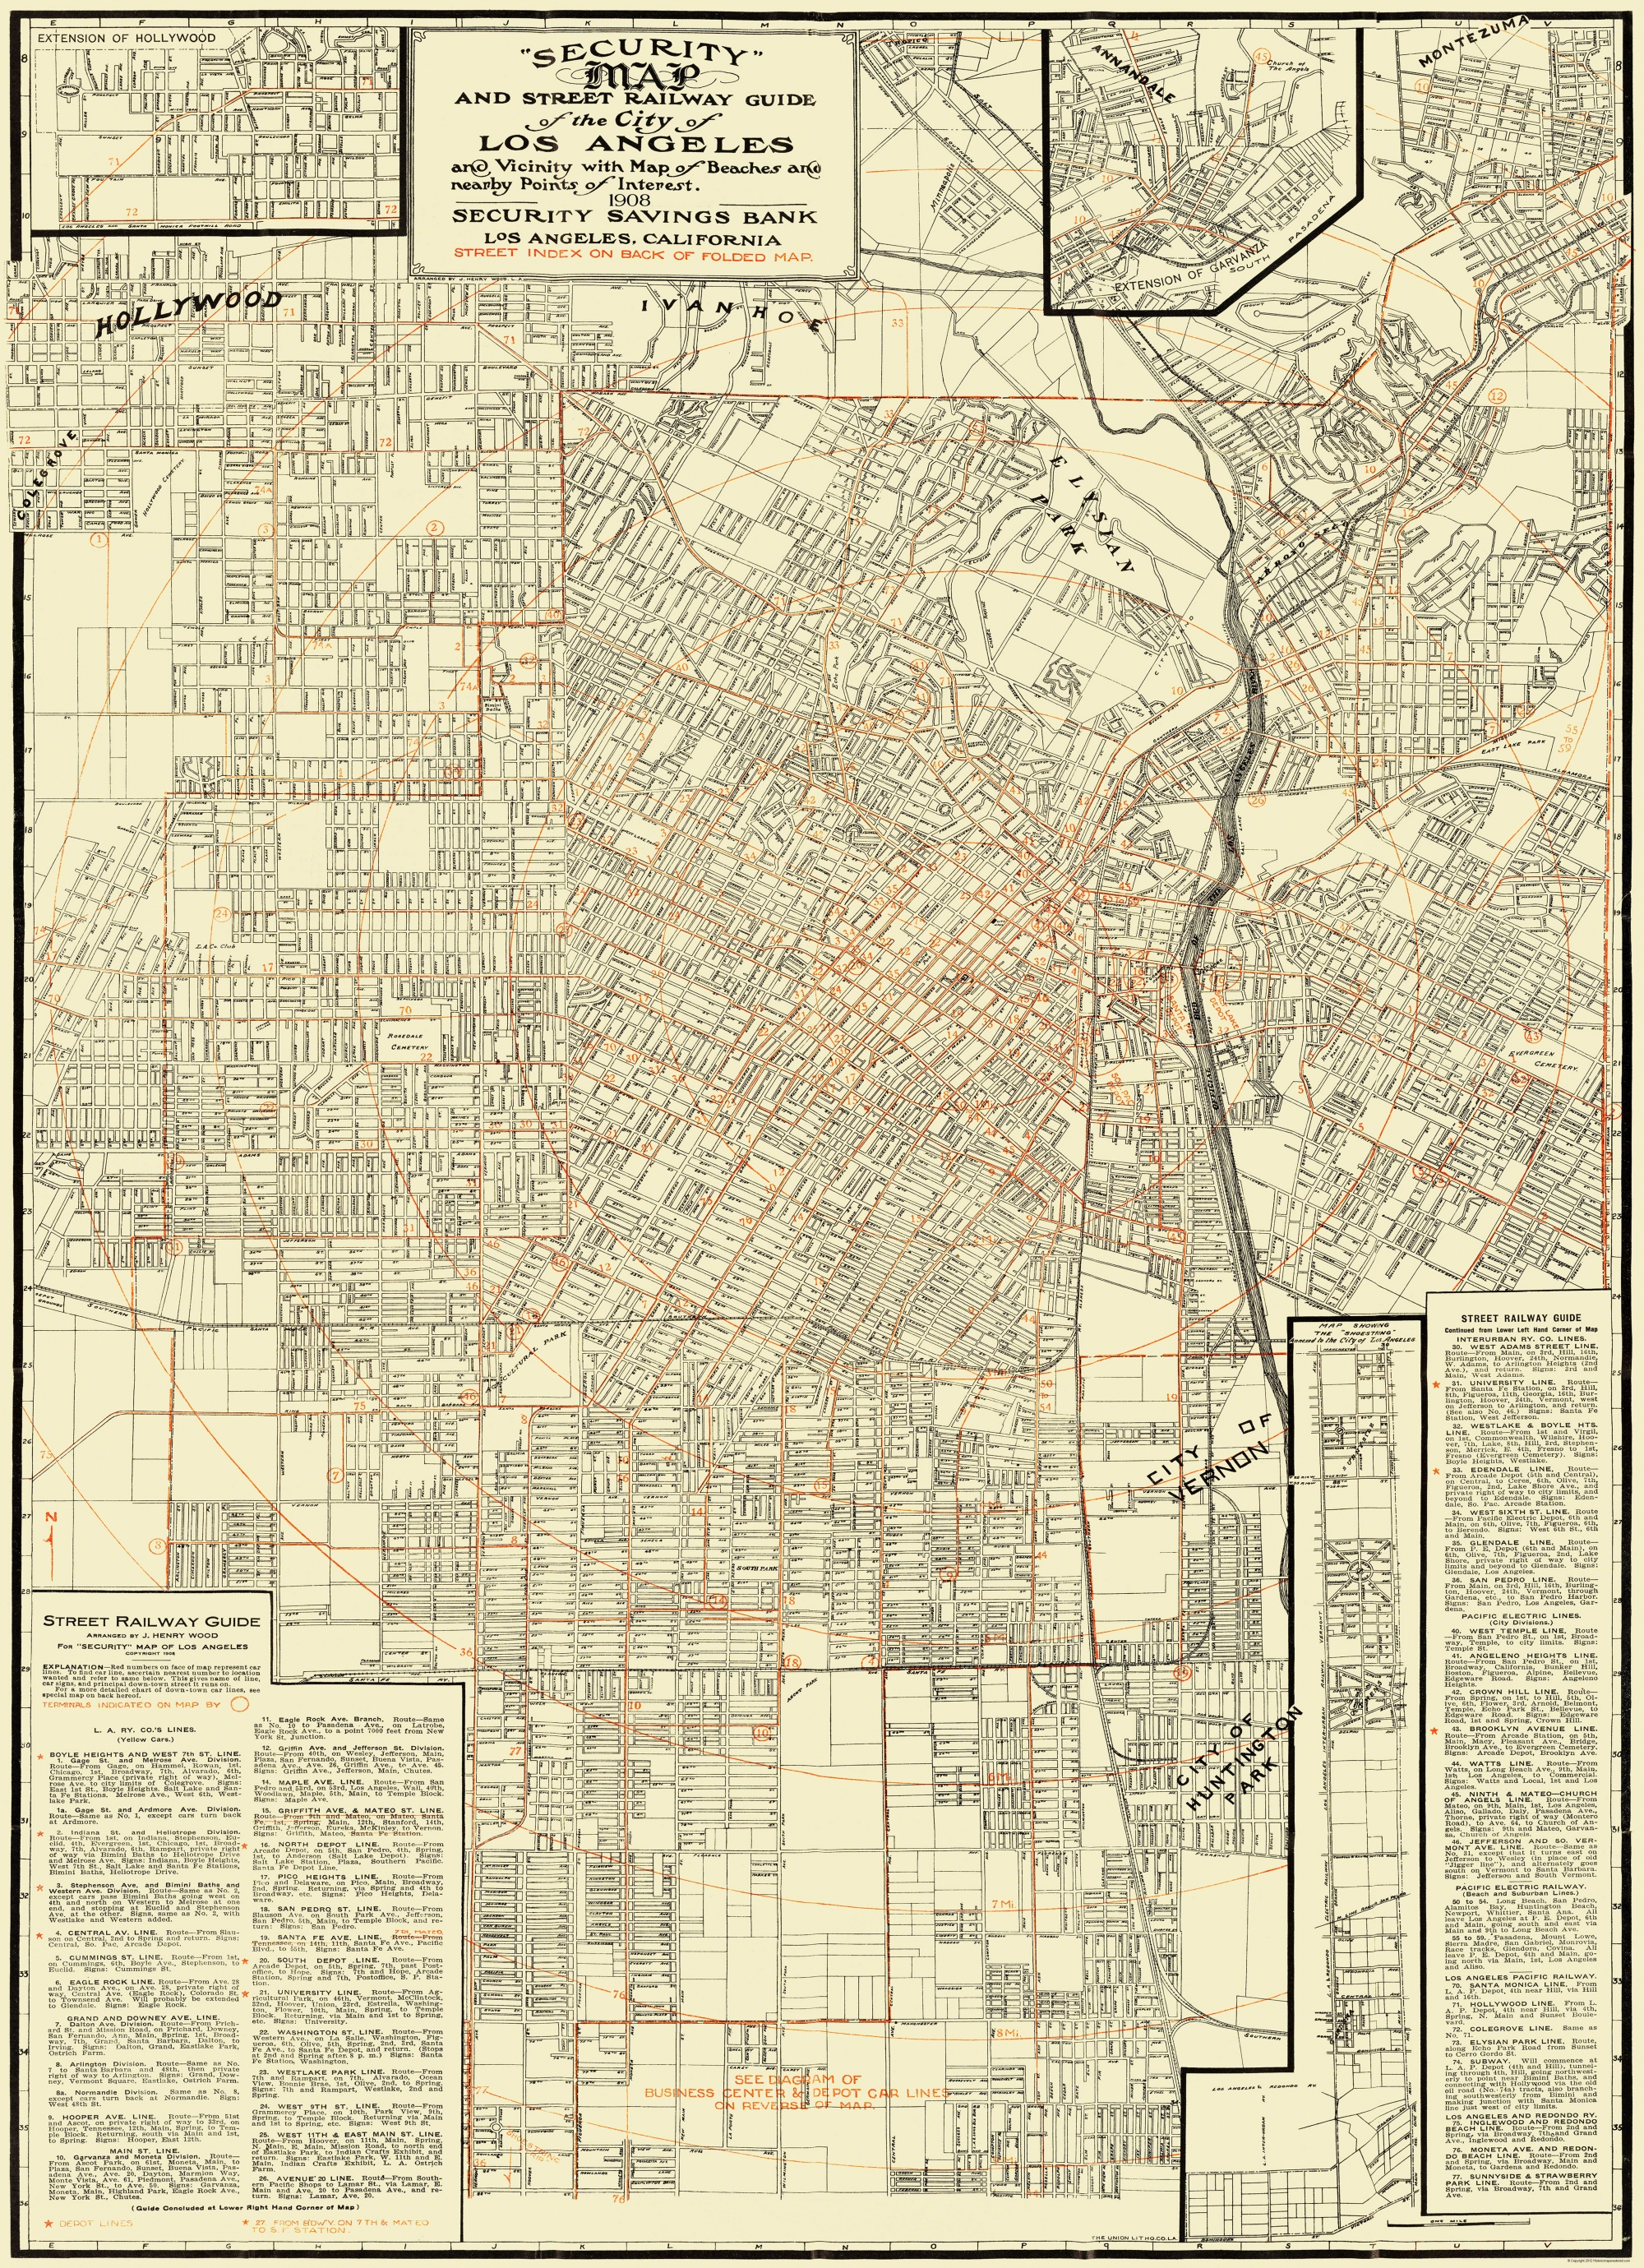 Old Railroad Map Los Angeles Street Railway Guide 1908 - Us Map 1908